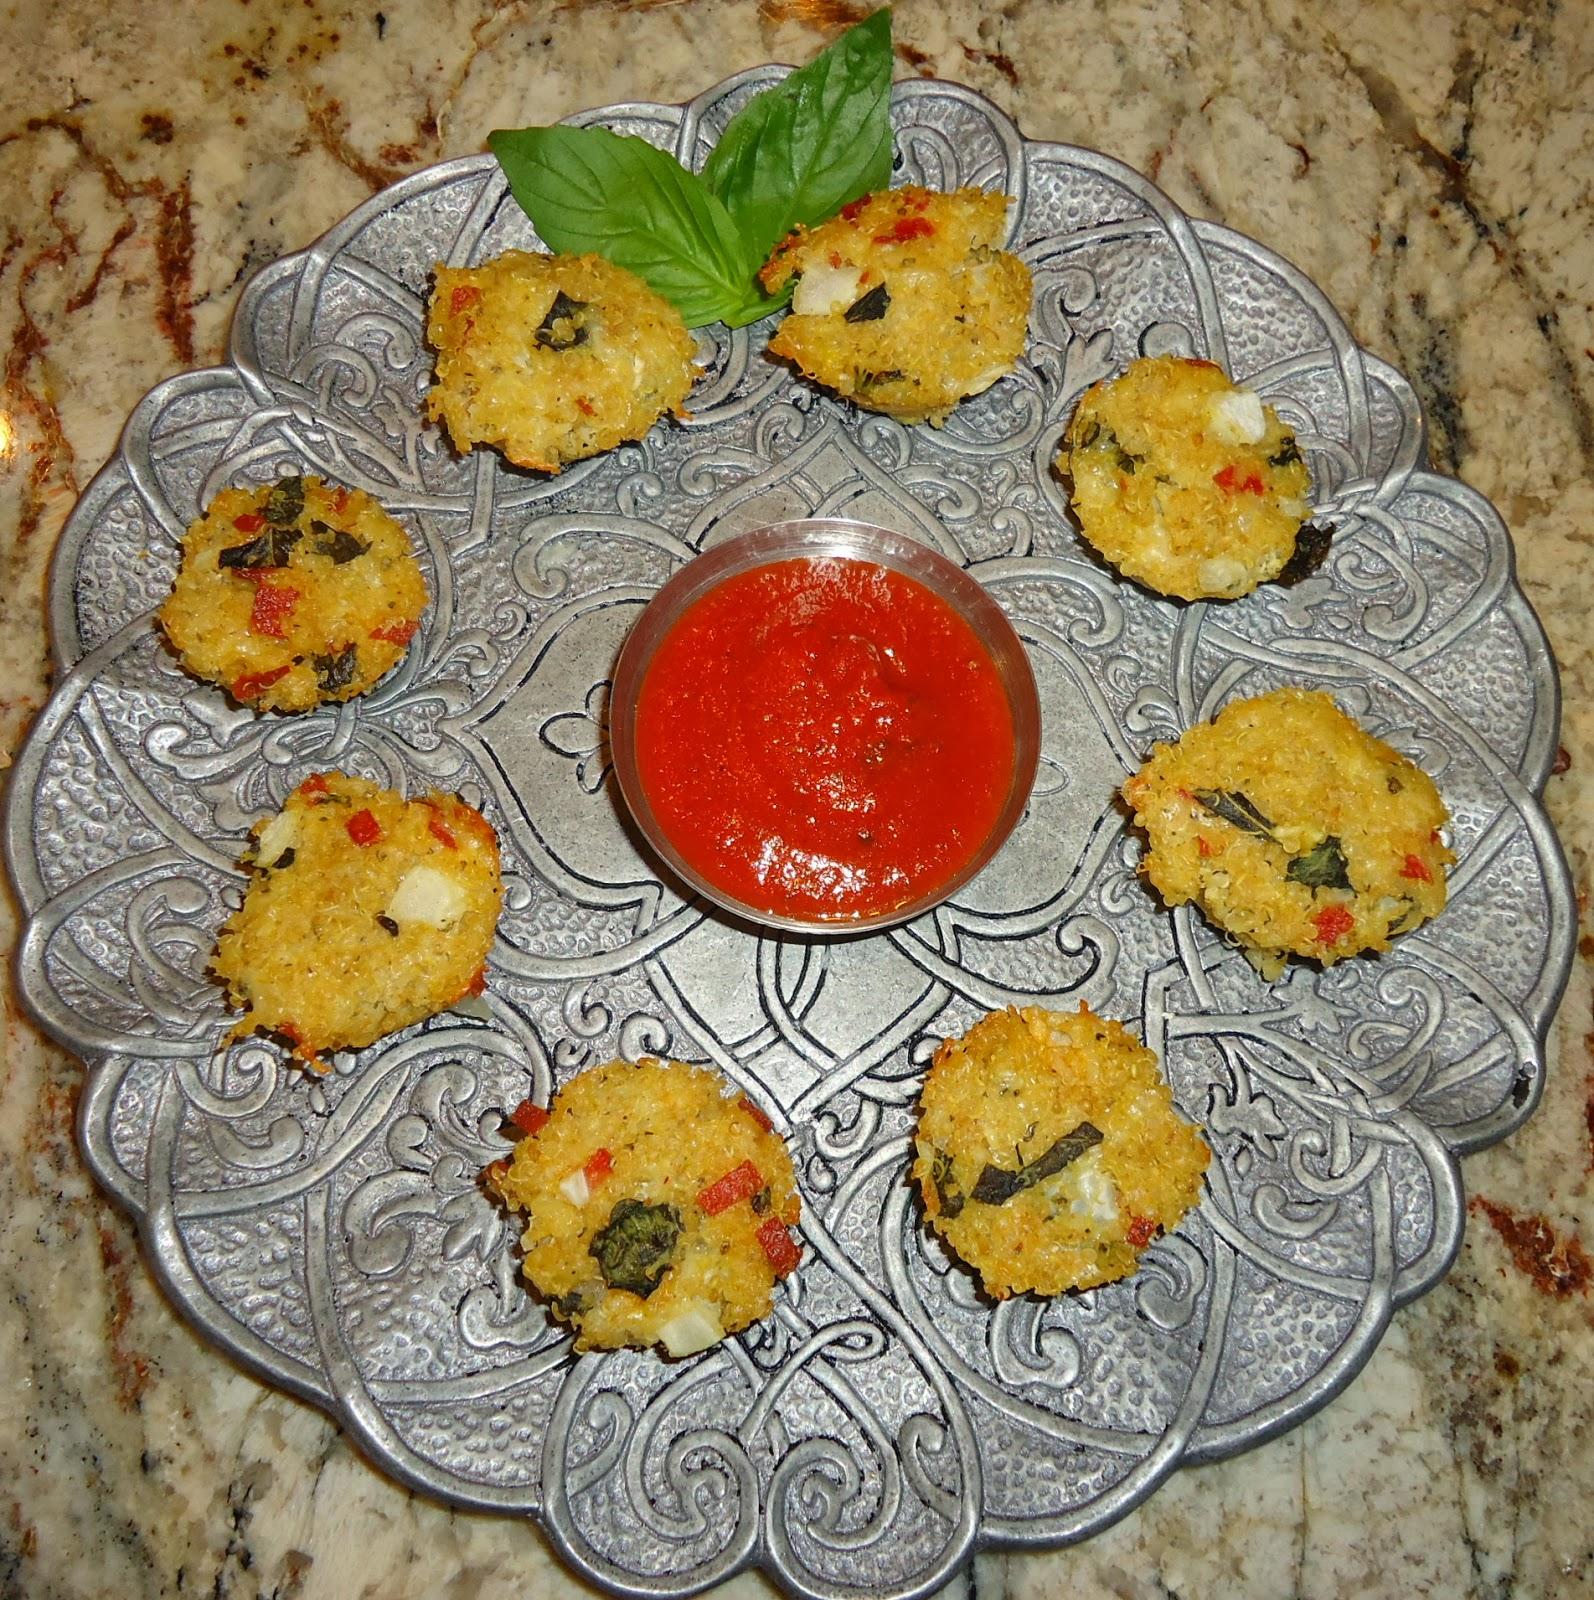 Sarah's Kitchen Thyme: Appetizers